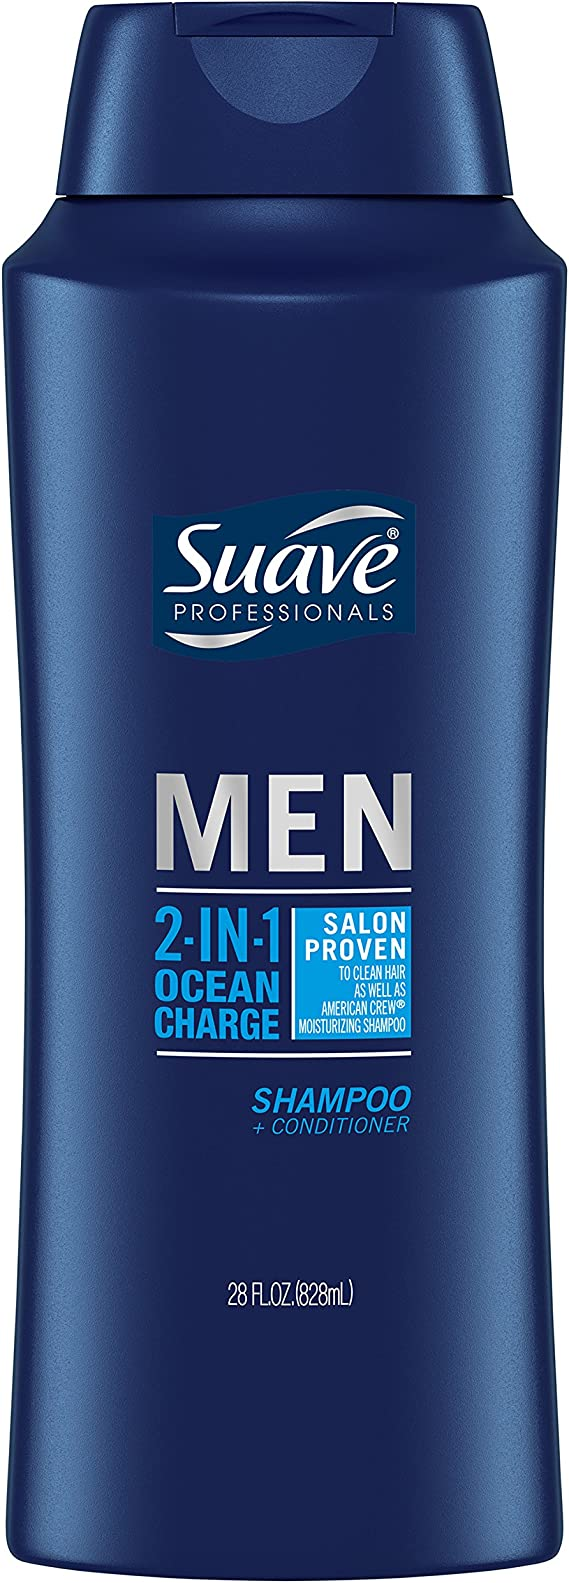 Suave 2 in 1 Shampoo and Conditioner